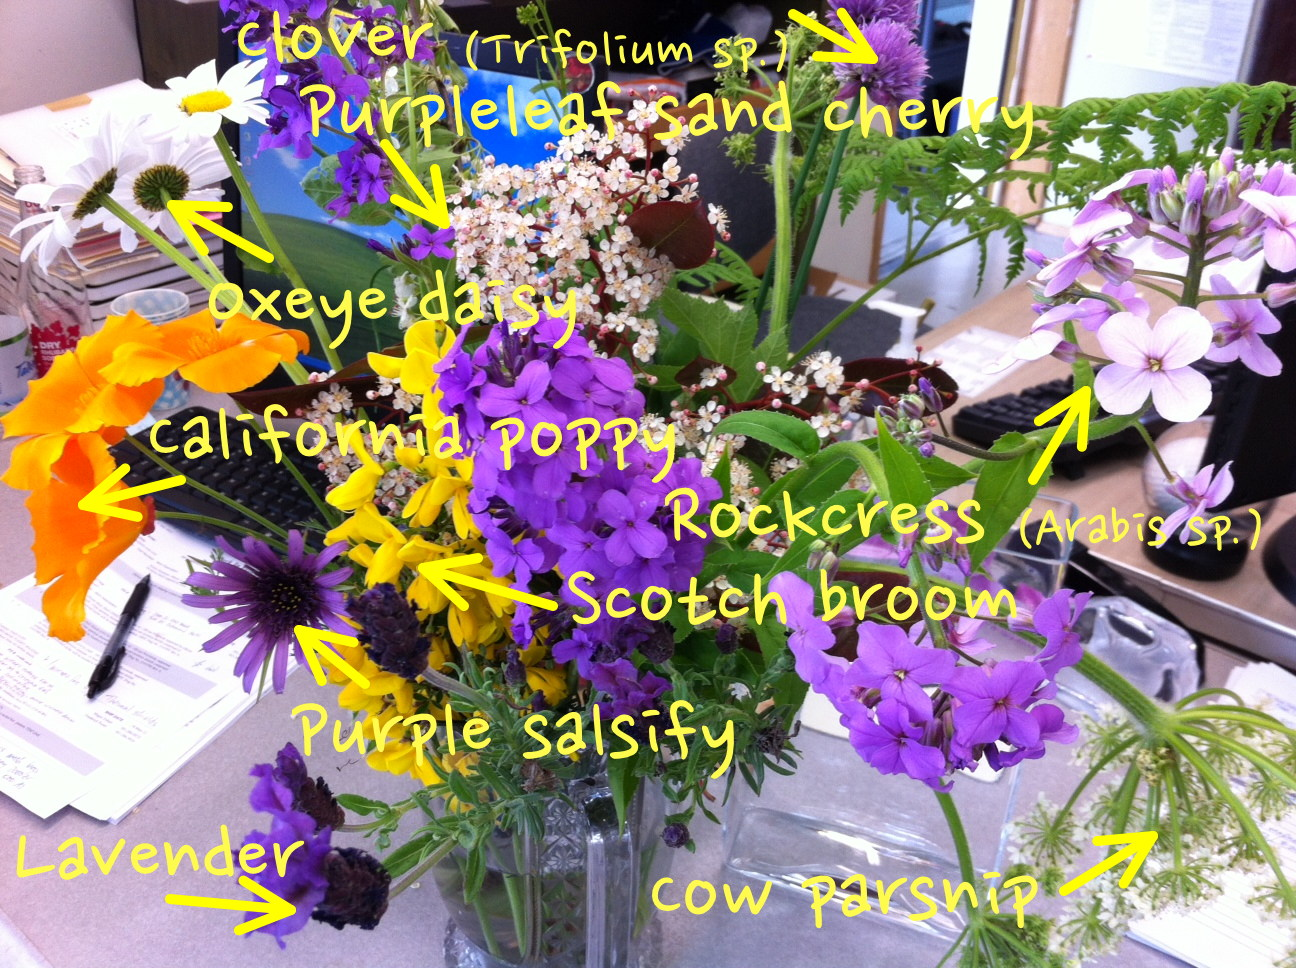 30 flower pictures and names list pelfusion flower pictures mightylinksfo